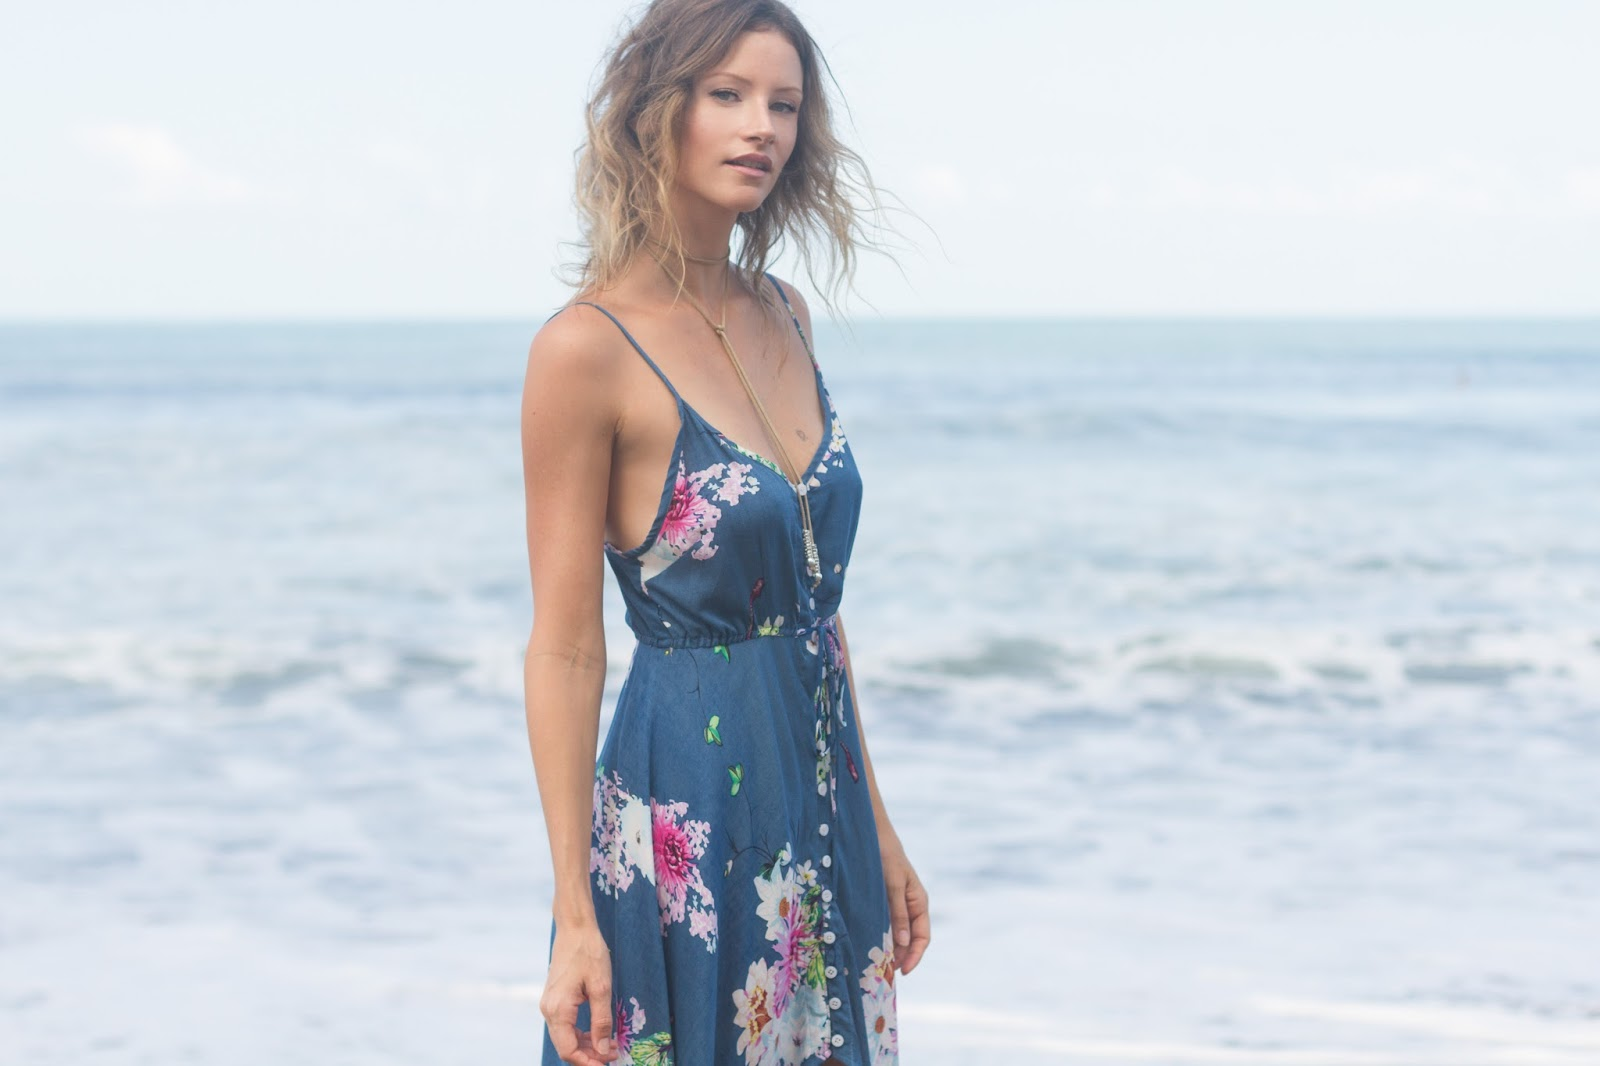 fashion blogger and designer Alison Hutchinson, iswearing a KAYVALYA Jade Dress in Blue Floral